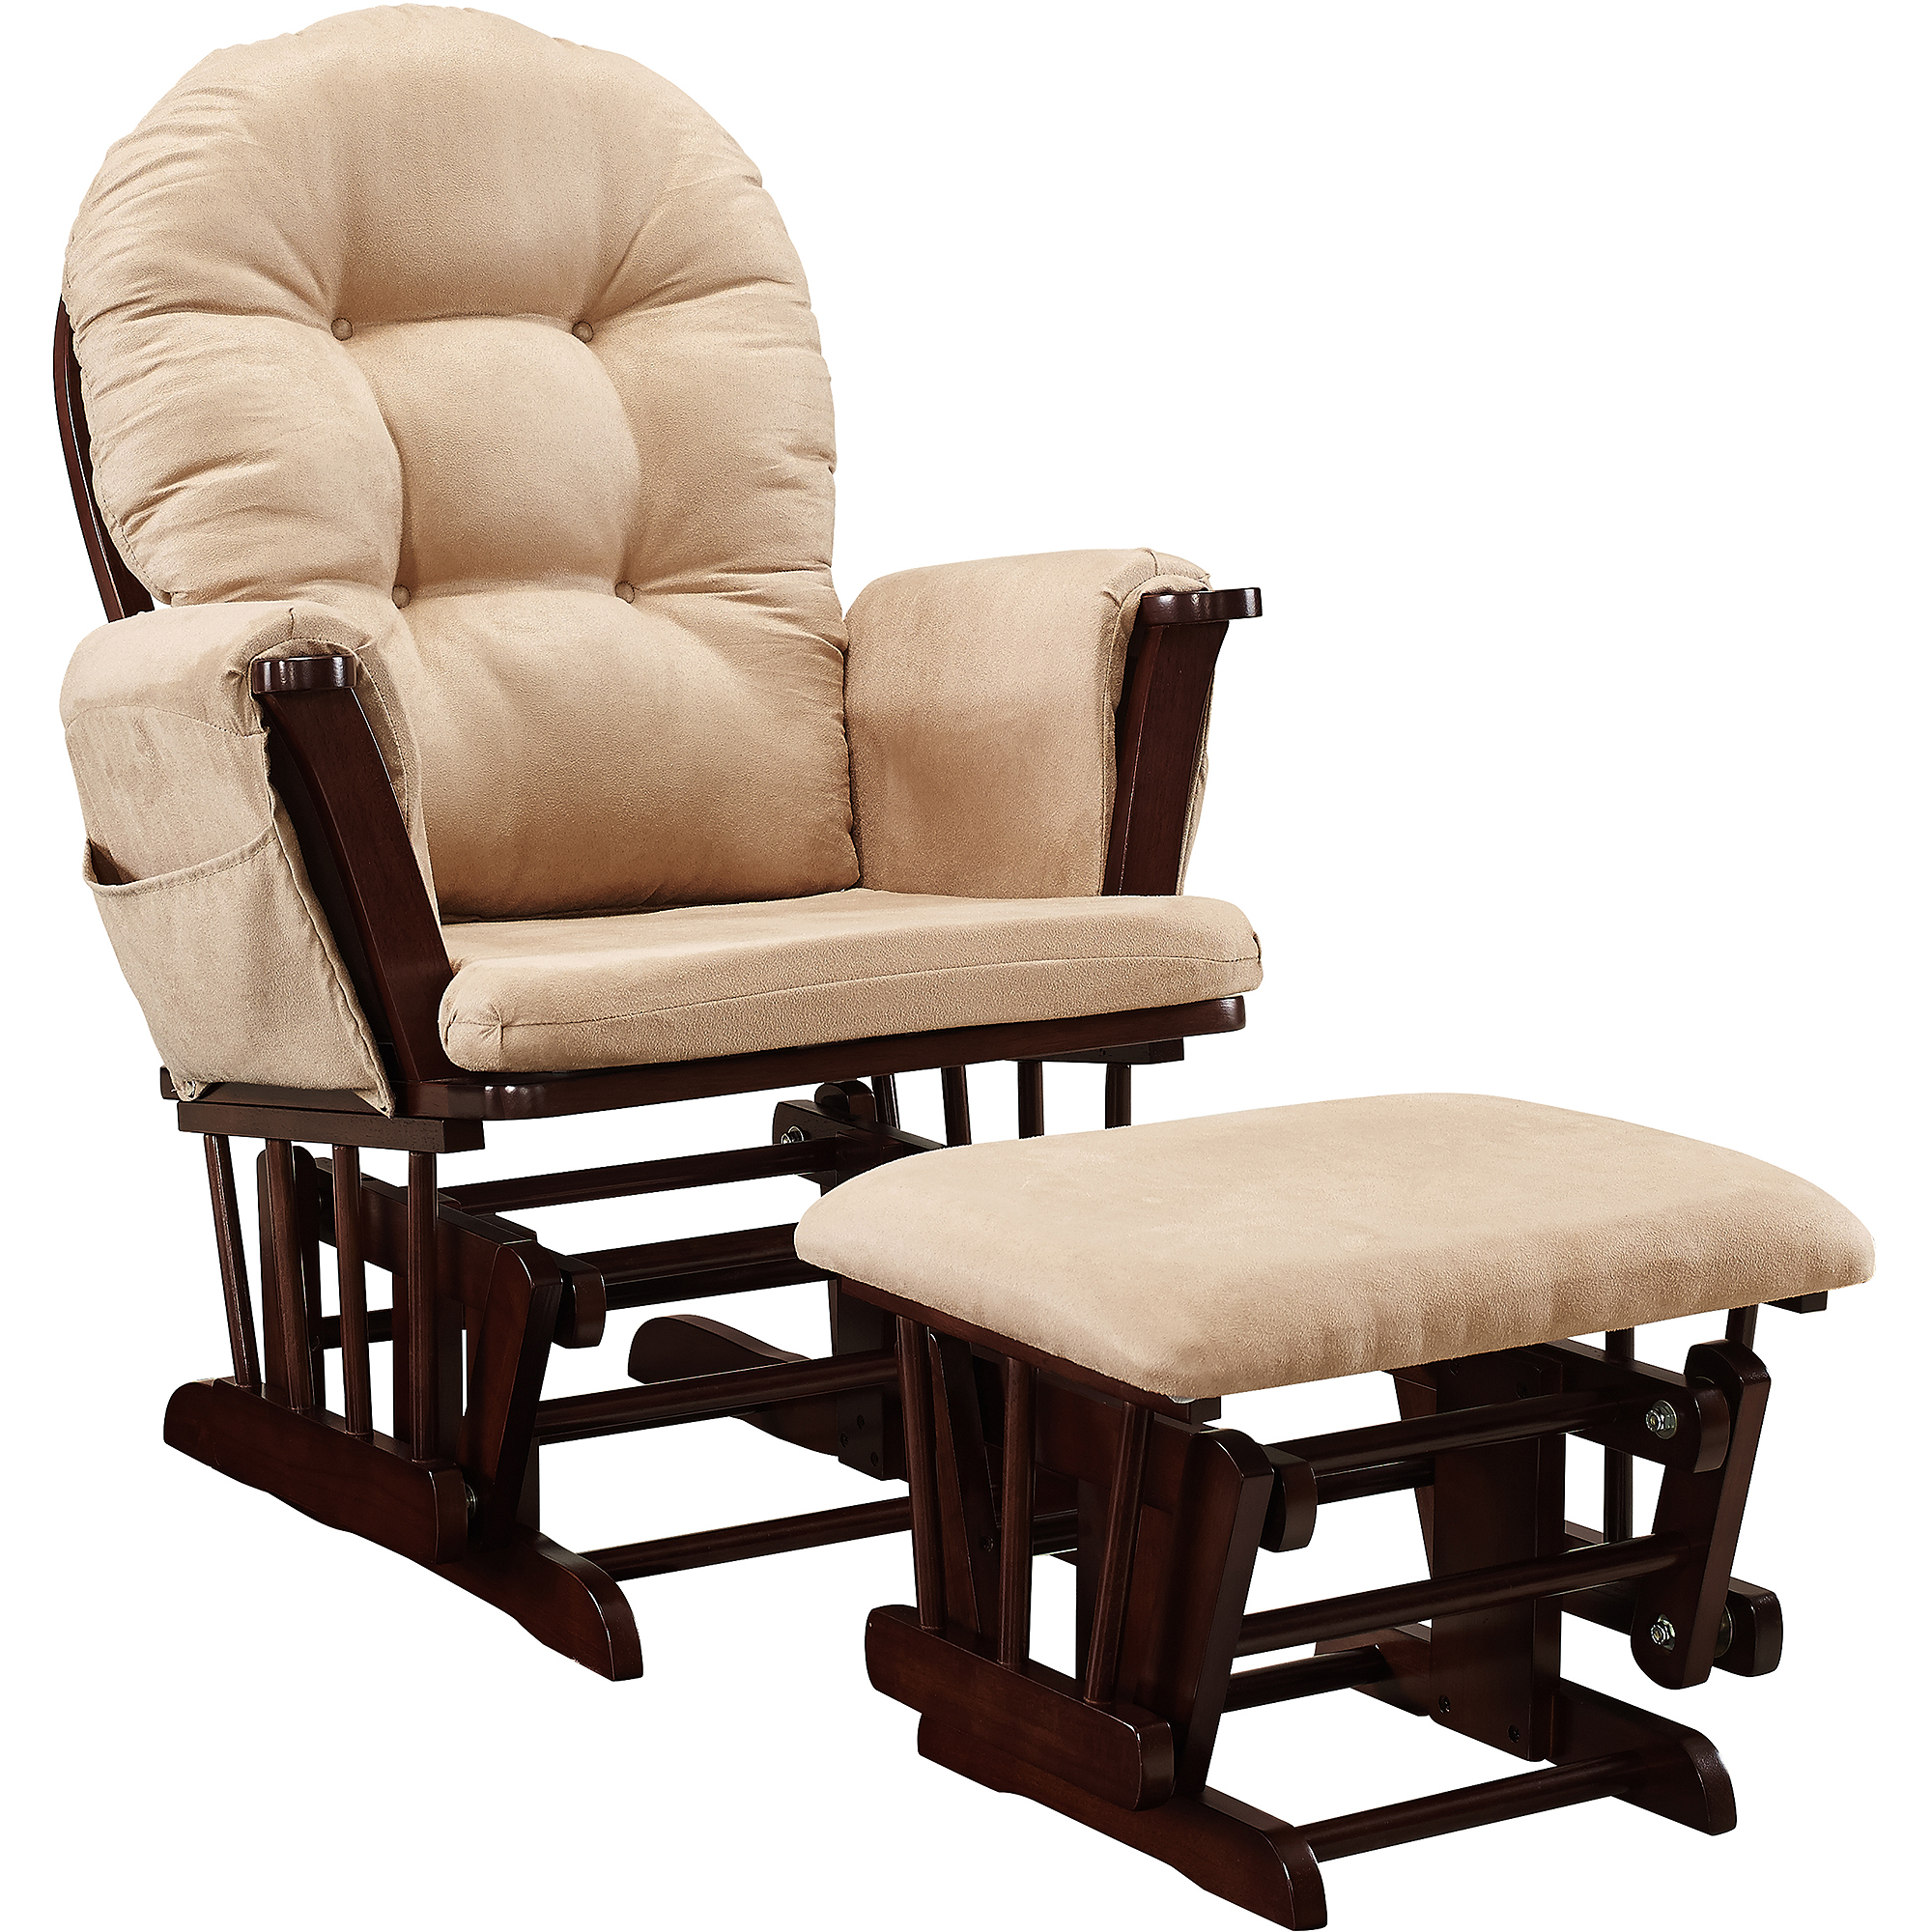 Baby Relax Harbour Glider Rocker and Ottoman Set, Beige